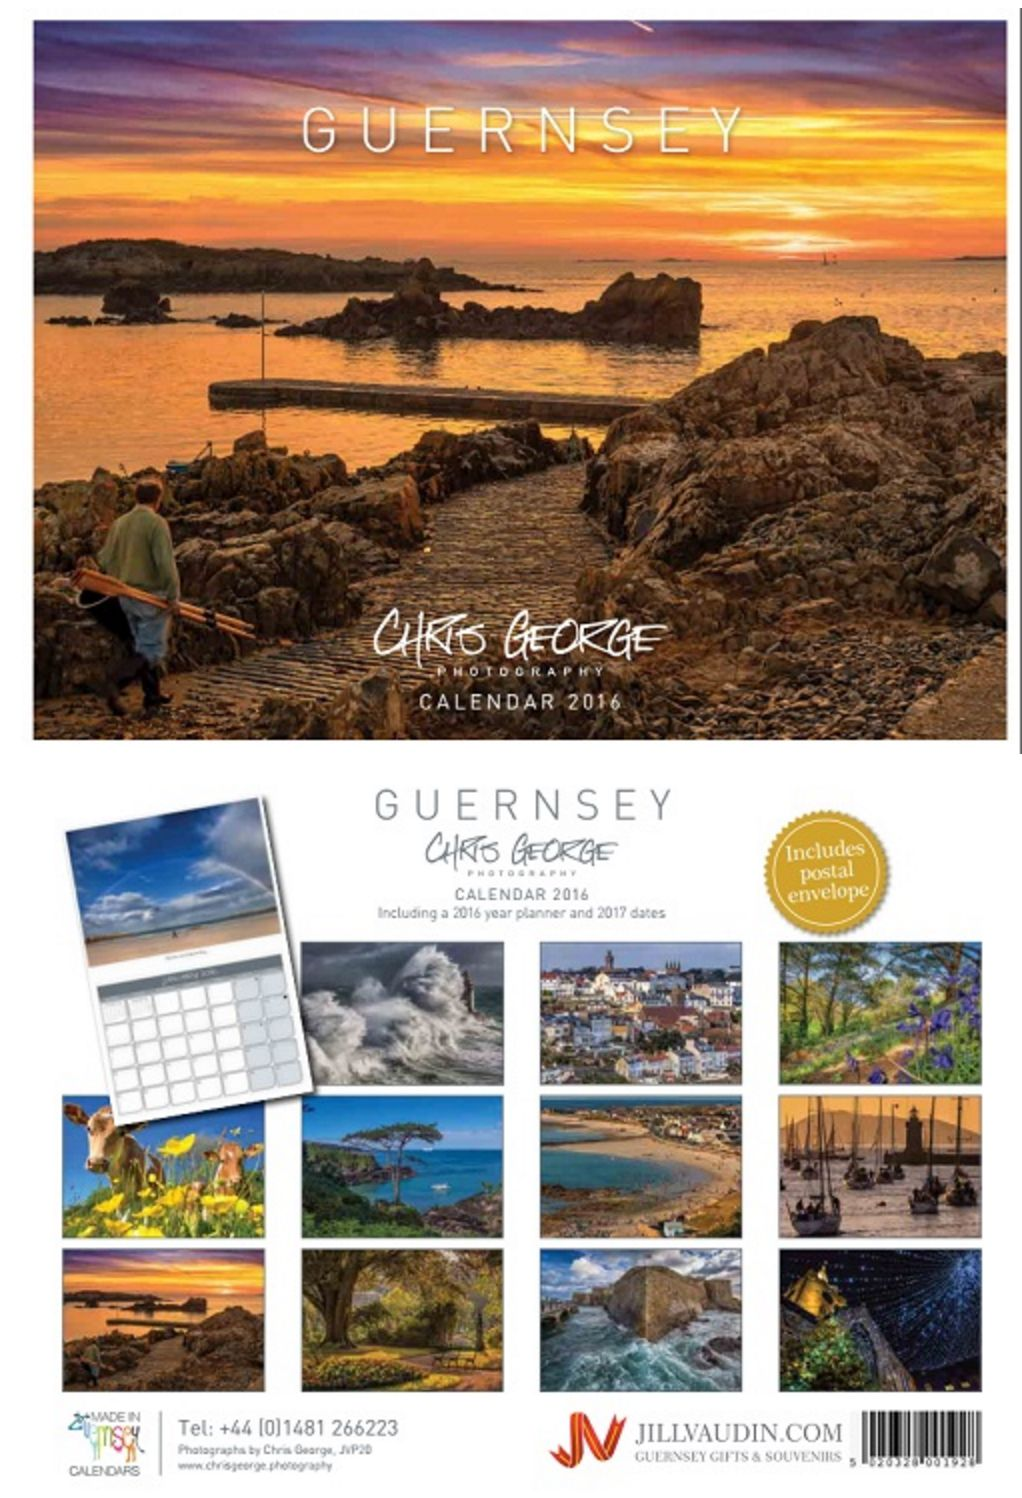 Calendars are now available to buy online! http://www.jillvaudin.com/gsyChrisGeorge.html They are also available from the Press Shop, Lexicon, Guernsey Post, Guernsey Information Centre, Cadeaux at Cobo. Cobo Village centre.